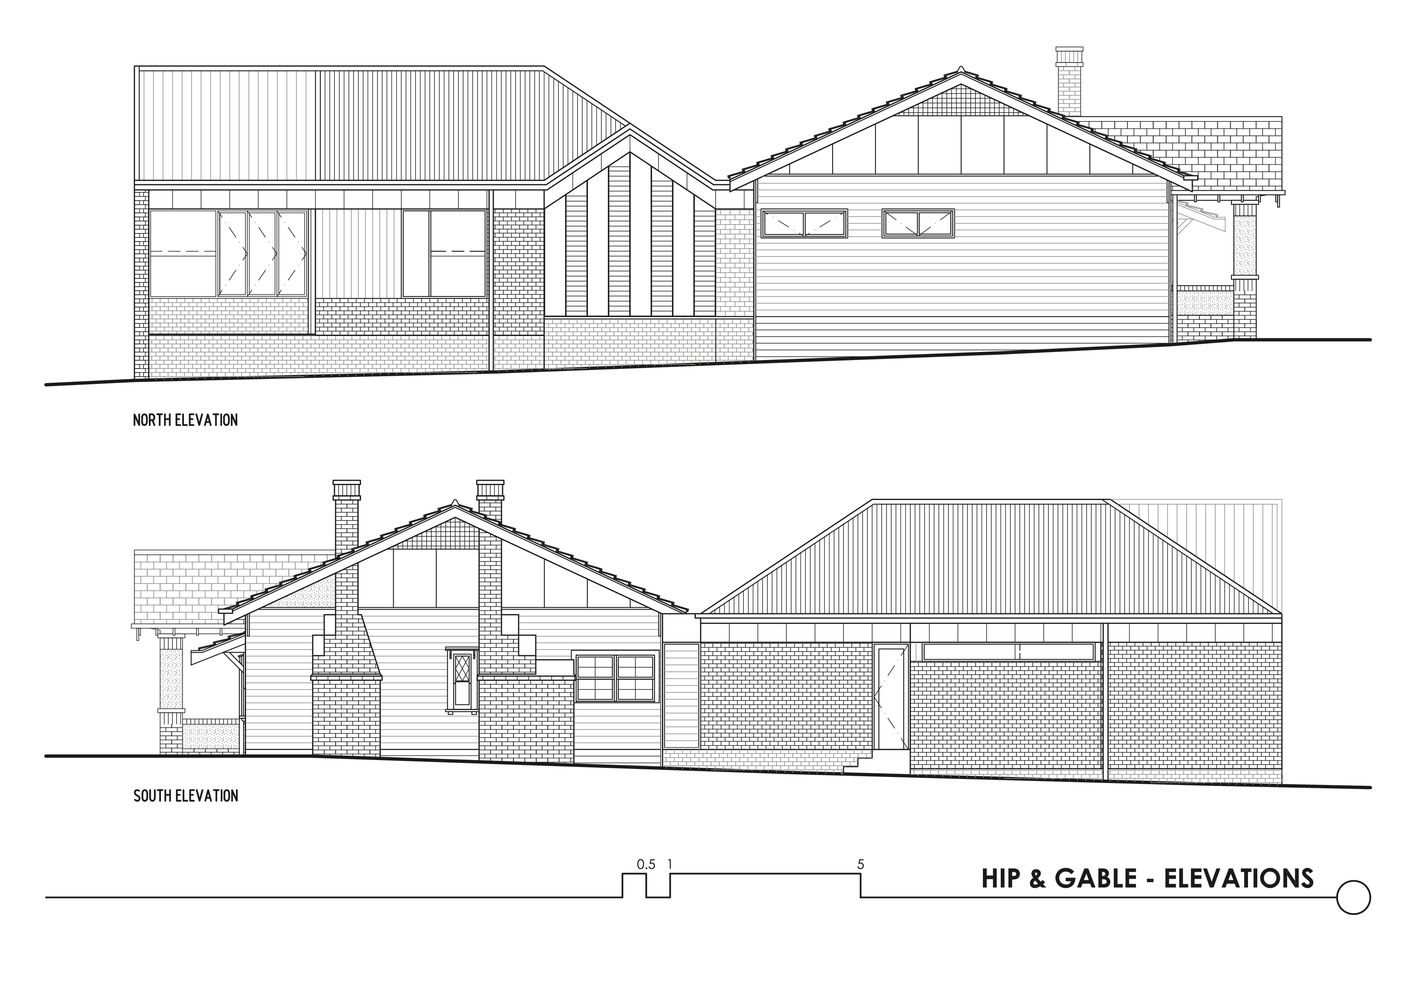 Gallery of Hip & Gable House / Architecture Architecture - 23 on house plans with gables, house roof designs, house siding designs, house gate designs, house patio designs, house canopy designs, house window designs, house shed designs, house overhang designs, house facade designs, house peak designs, house stoop designs, house maps designs, house truss designs, house skylight designs, house dormer designs, house wall designs, house mezzanine designs, house siding with stone front porch, house chimney designs,